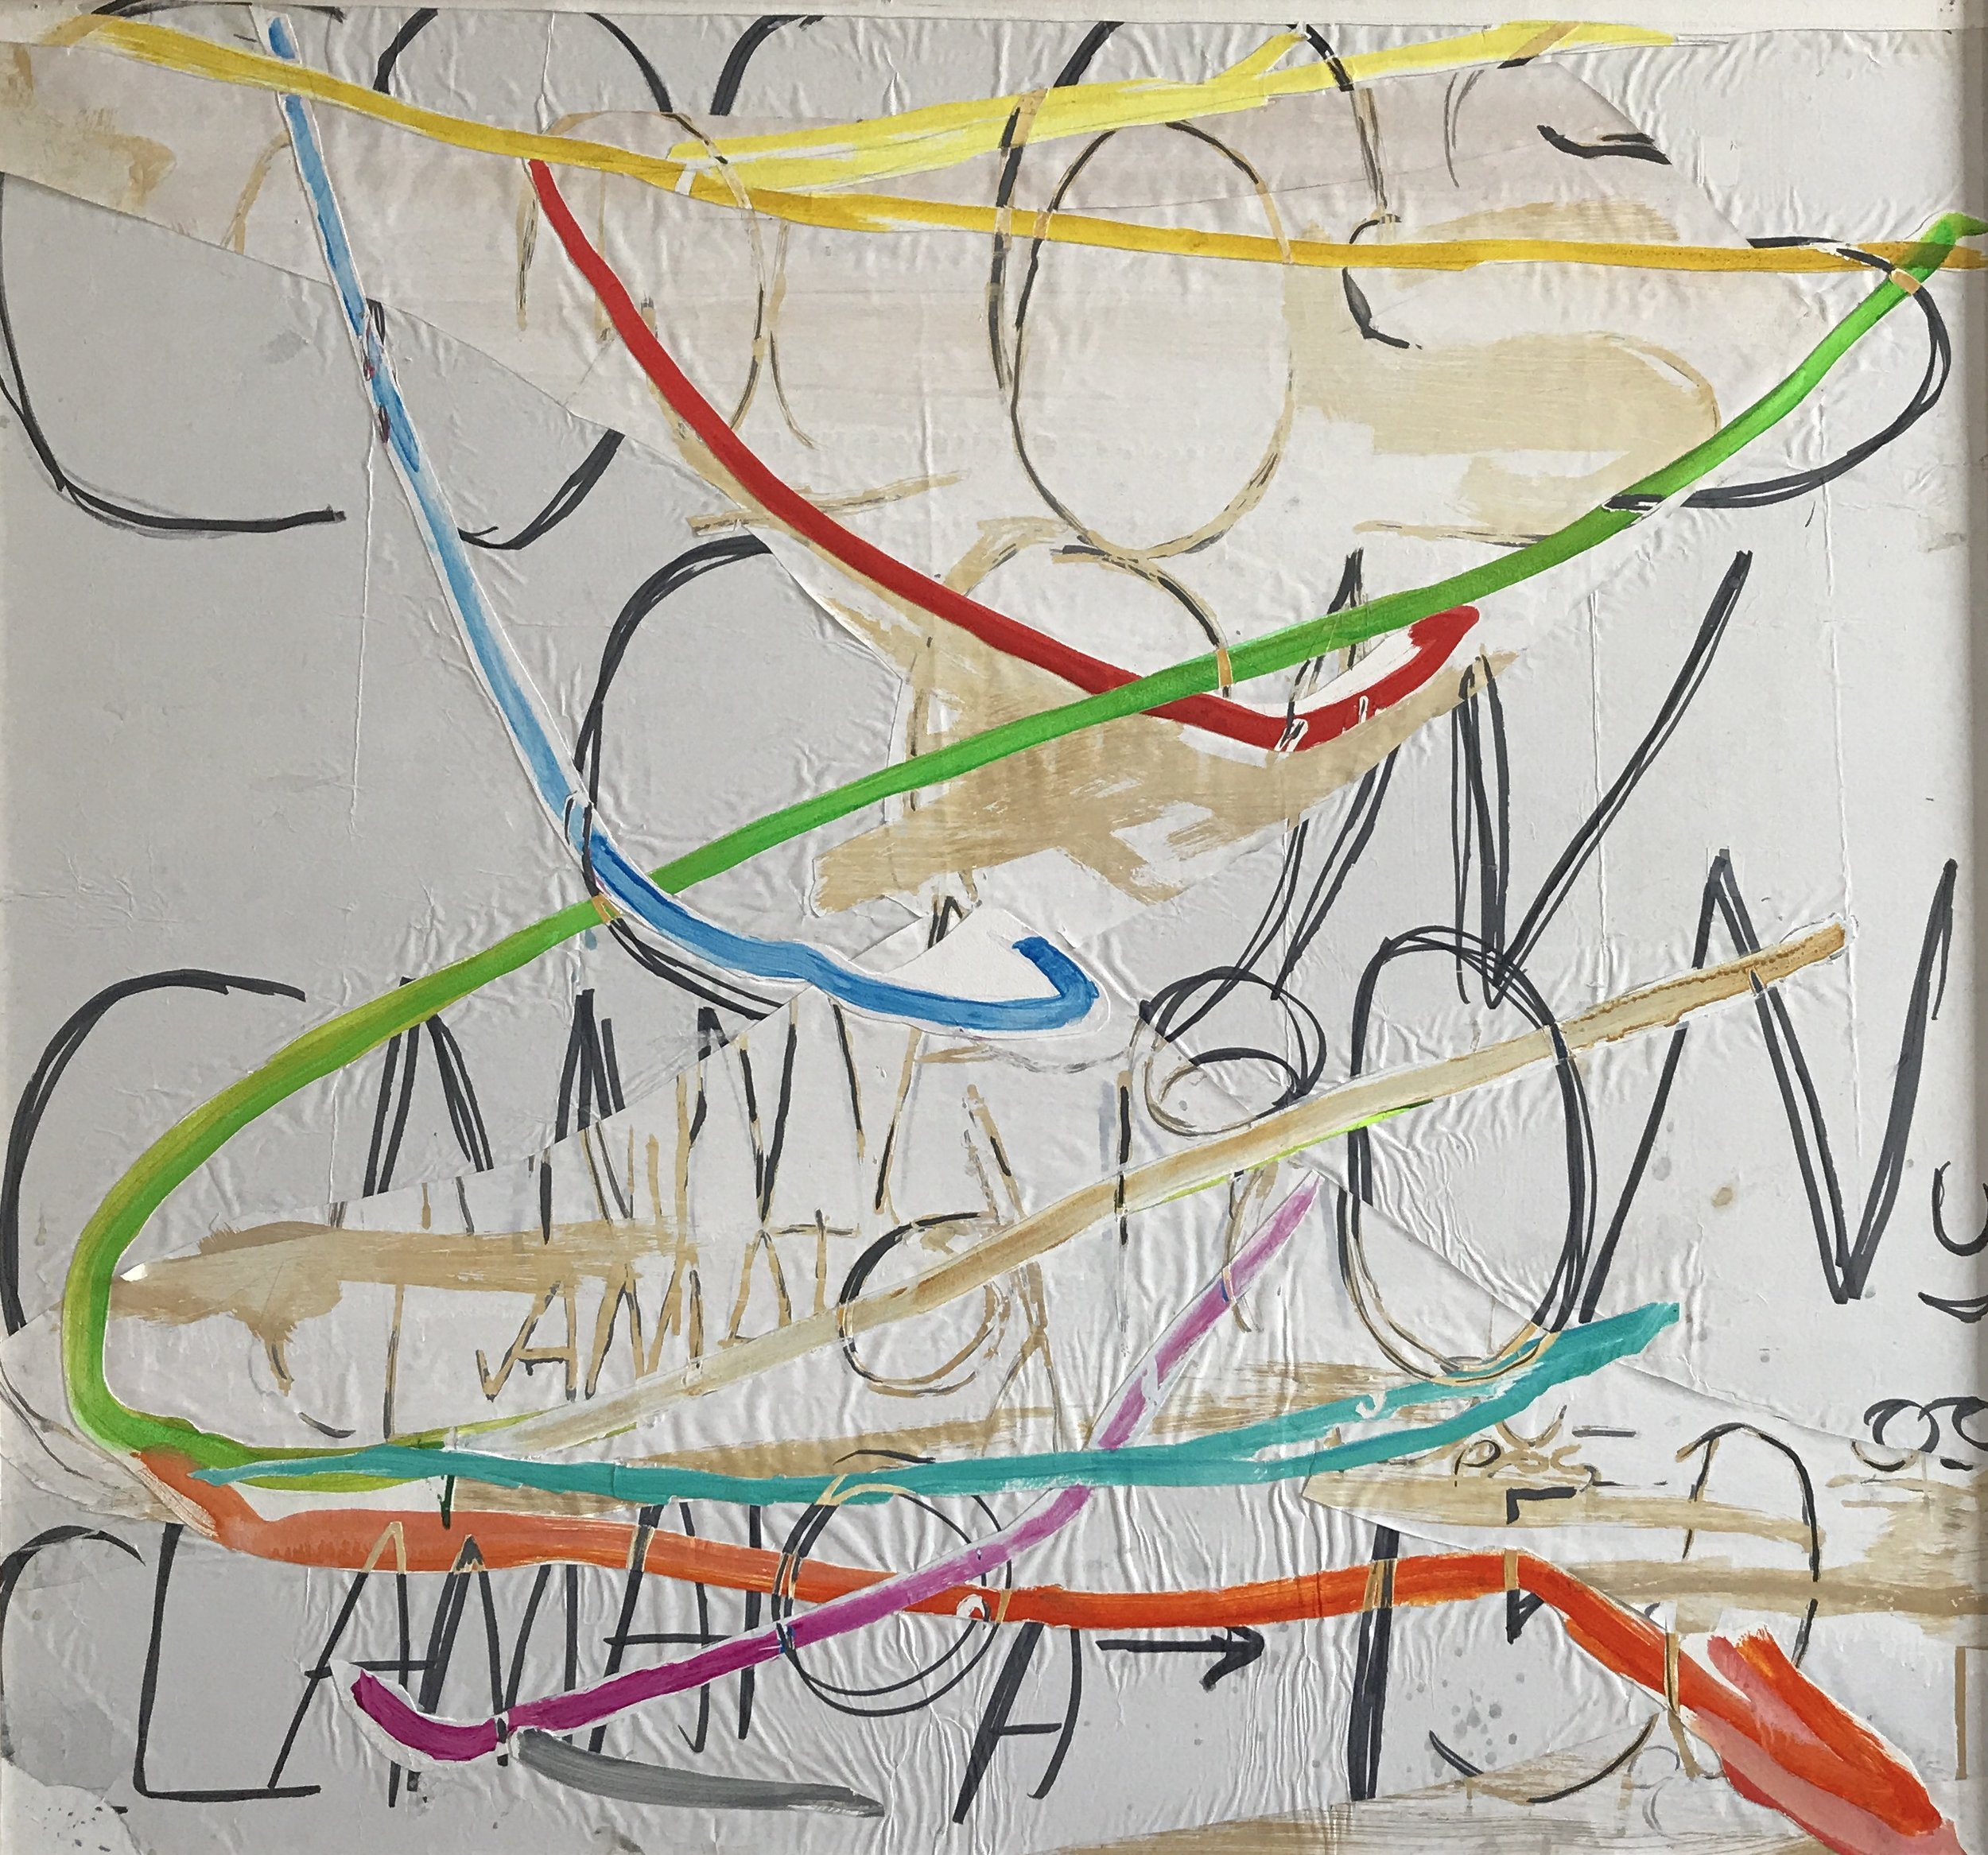 Jonathan Frioux    Pico de Gallo #6   mixed media on paper, 42 x 40 in.